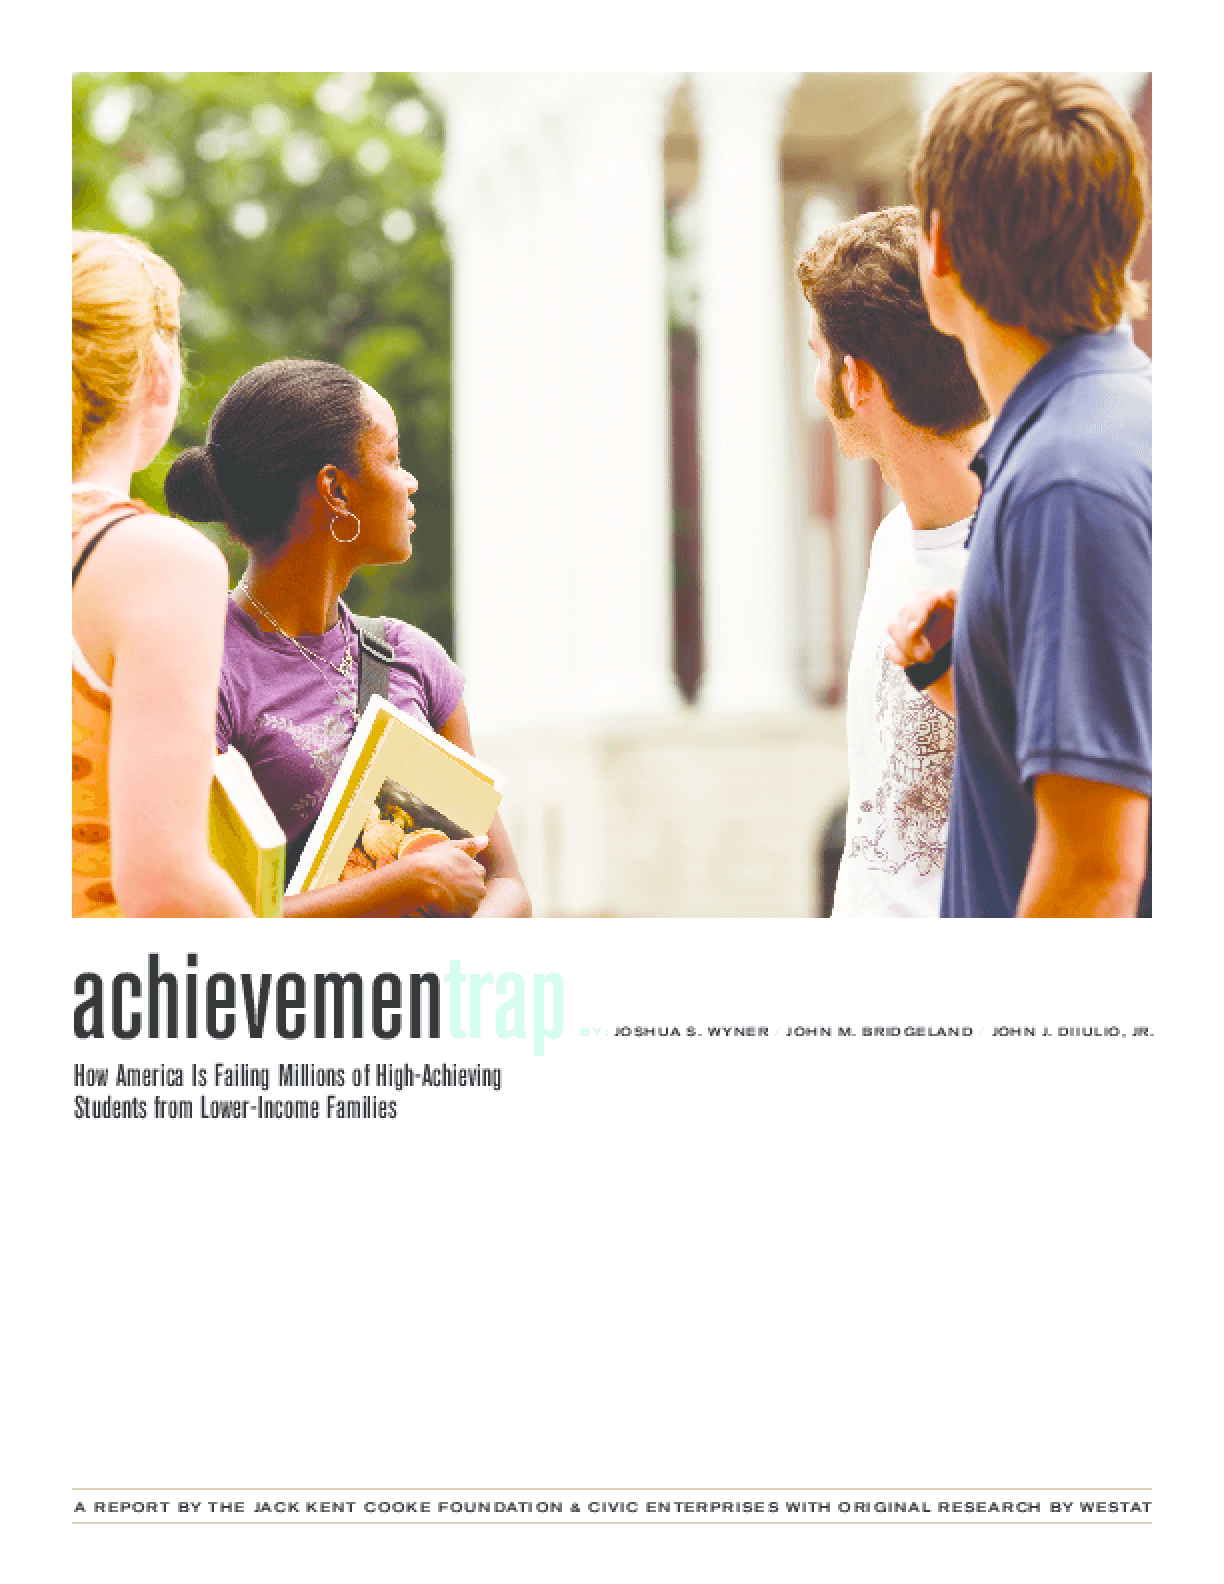 Achievement Trap: How America Is Failing Millions of High-Achieving Students From Lower-Income Families